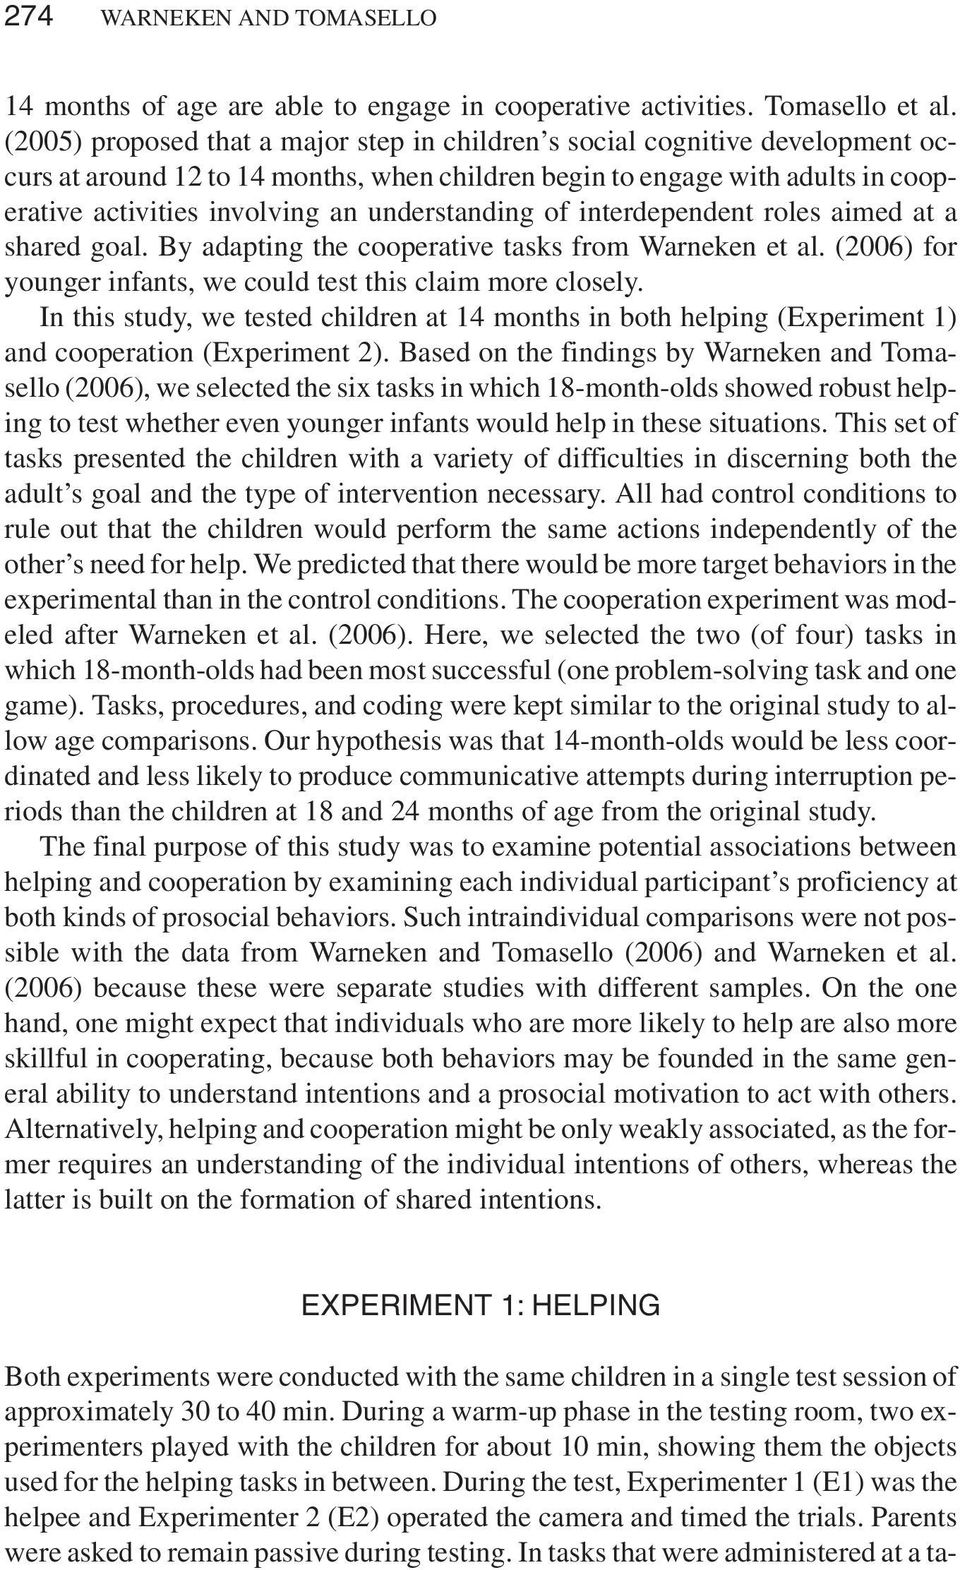 understanding of interdependent roles aimed at a shared goal. By adapting the cooperative tasks from Warneken et al. (2006) for younger infants, we could test this claim more closely.